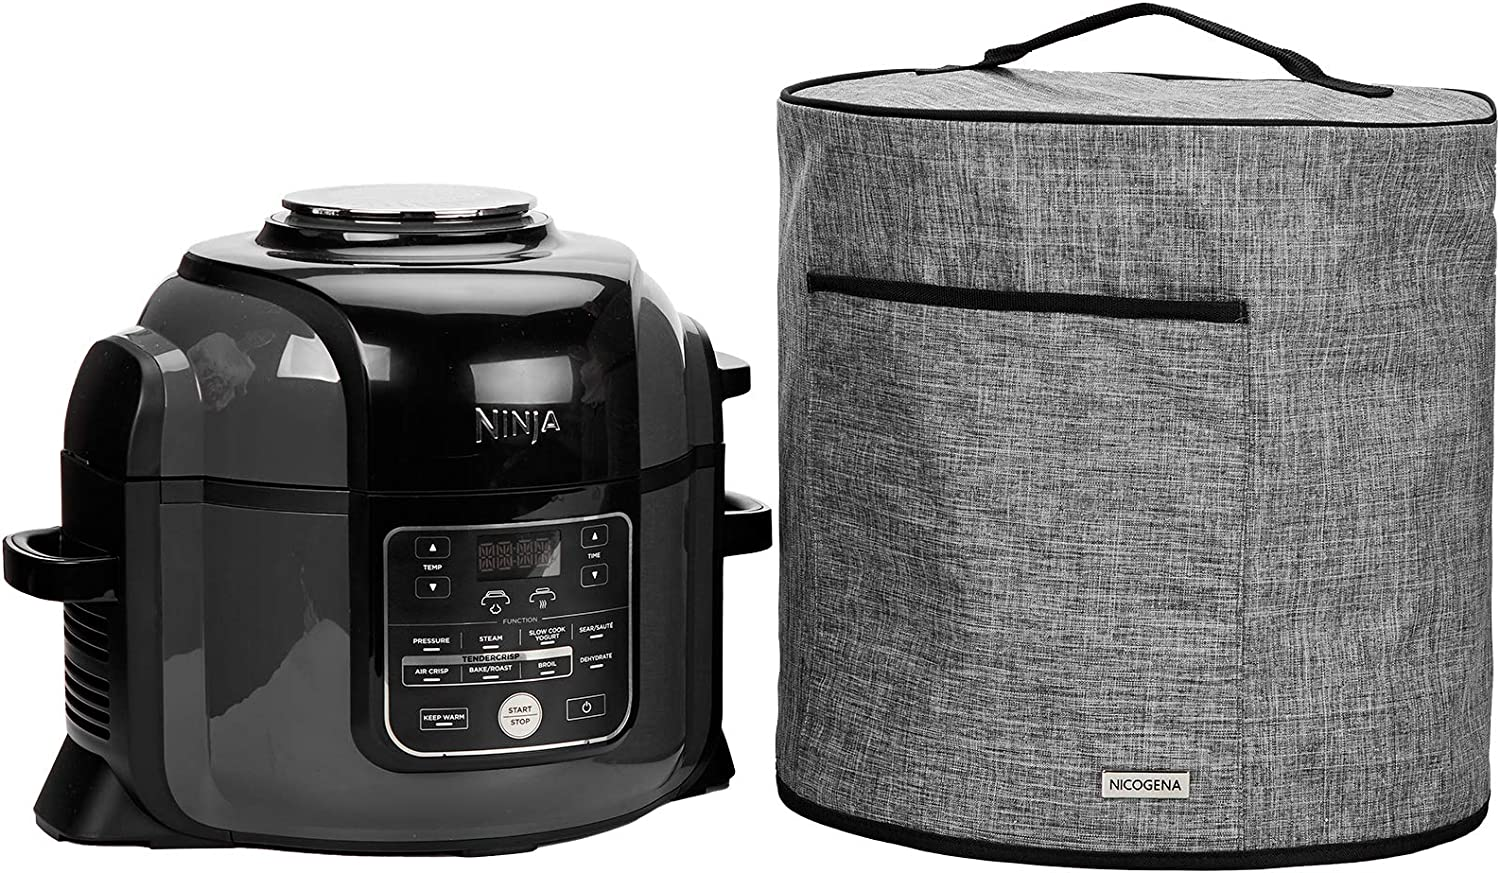 NICOGENA Pressure Cooker Dust Cover Compatible with Ninja Foodi 6.5 Quart And 8 Quart Pressure Cooker, Front Pocket for Accessories and Aluminum Film Lining for Easy Cleaning, Grey